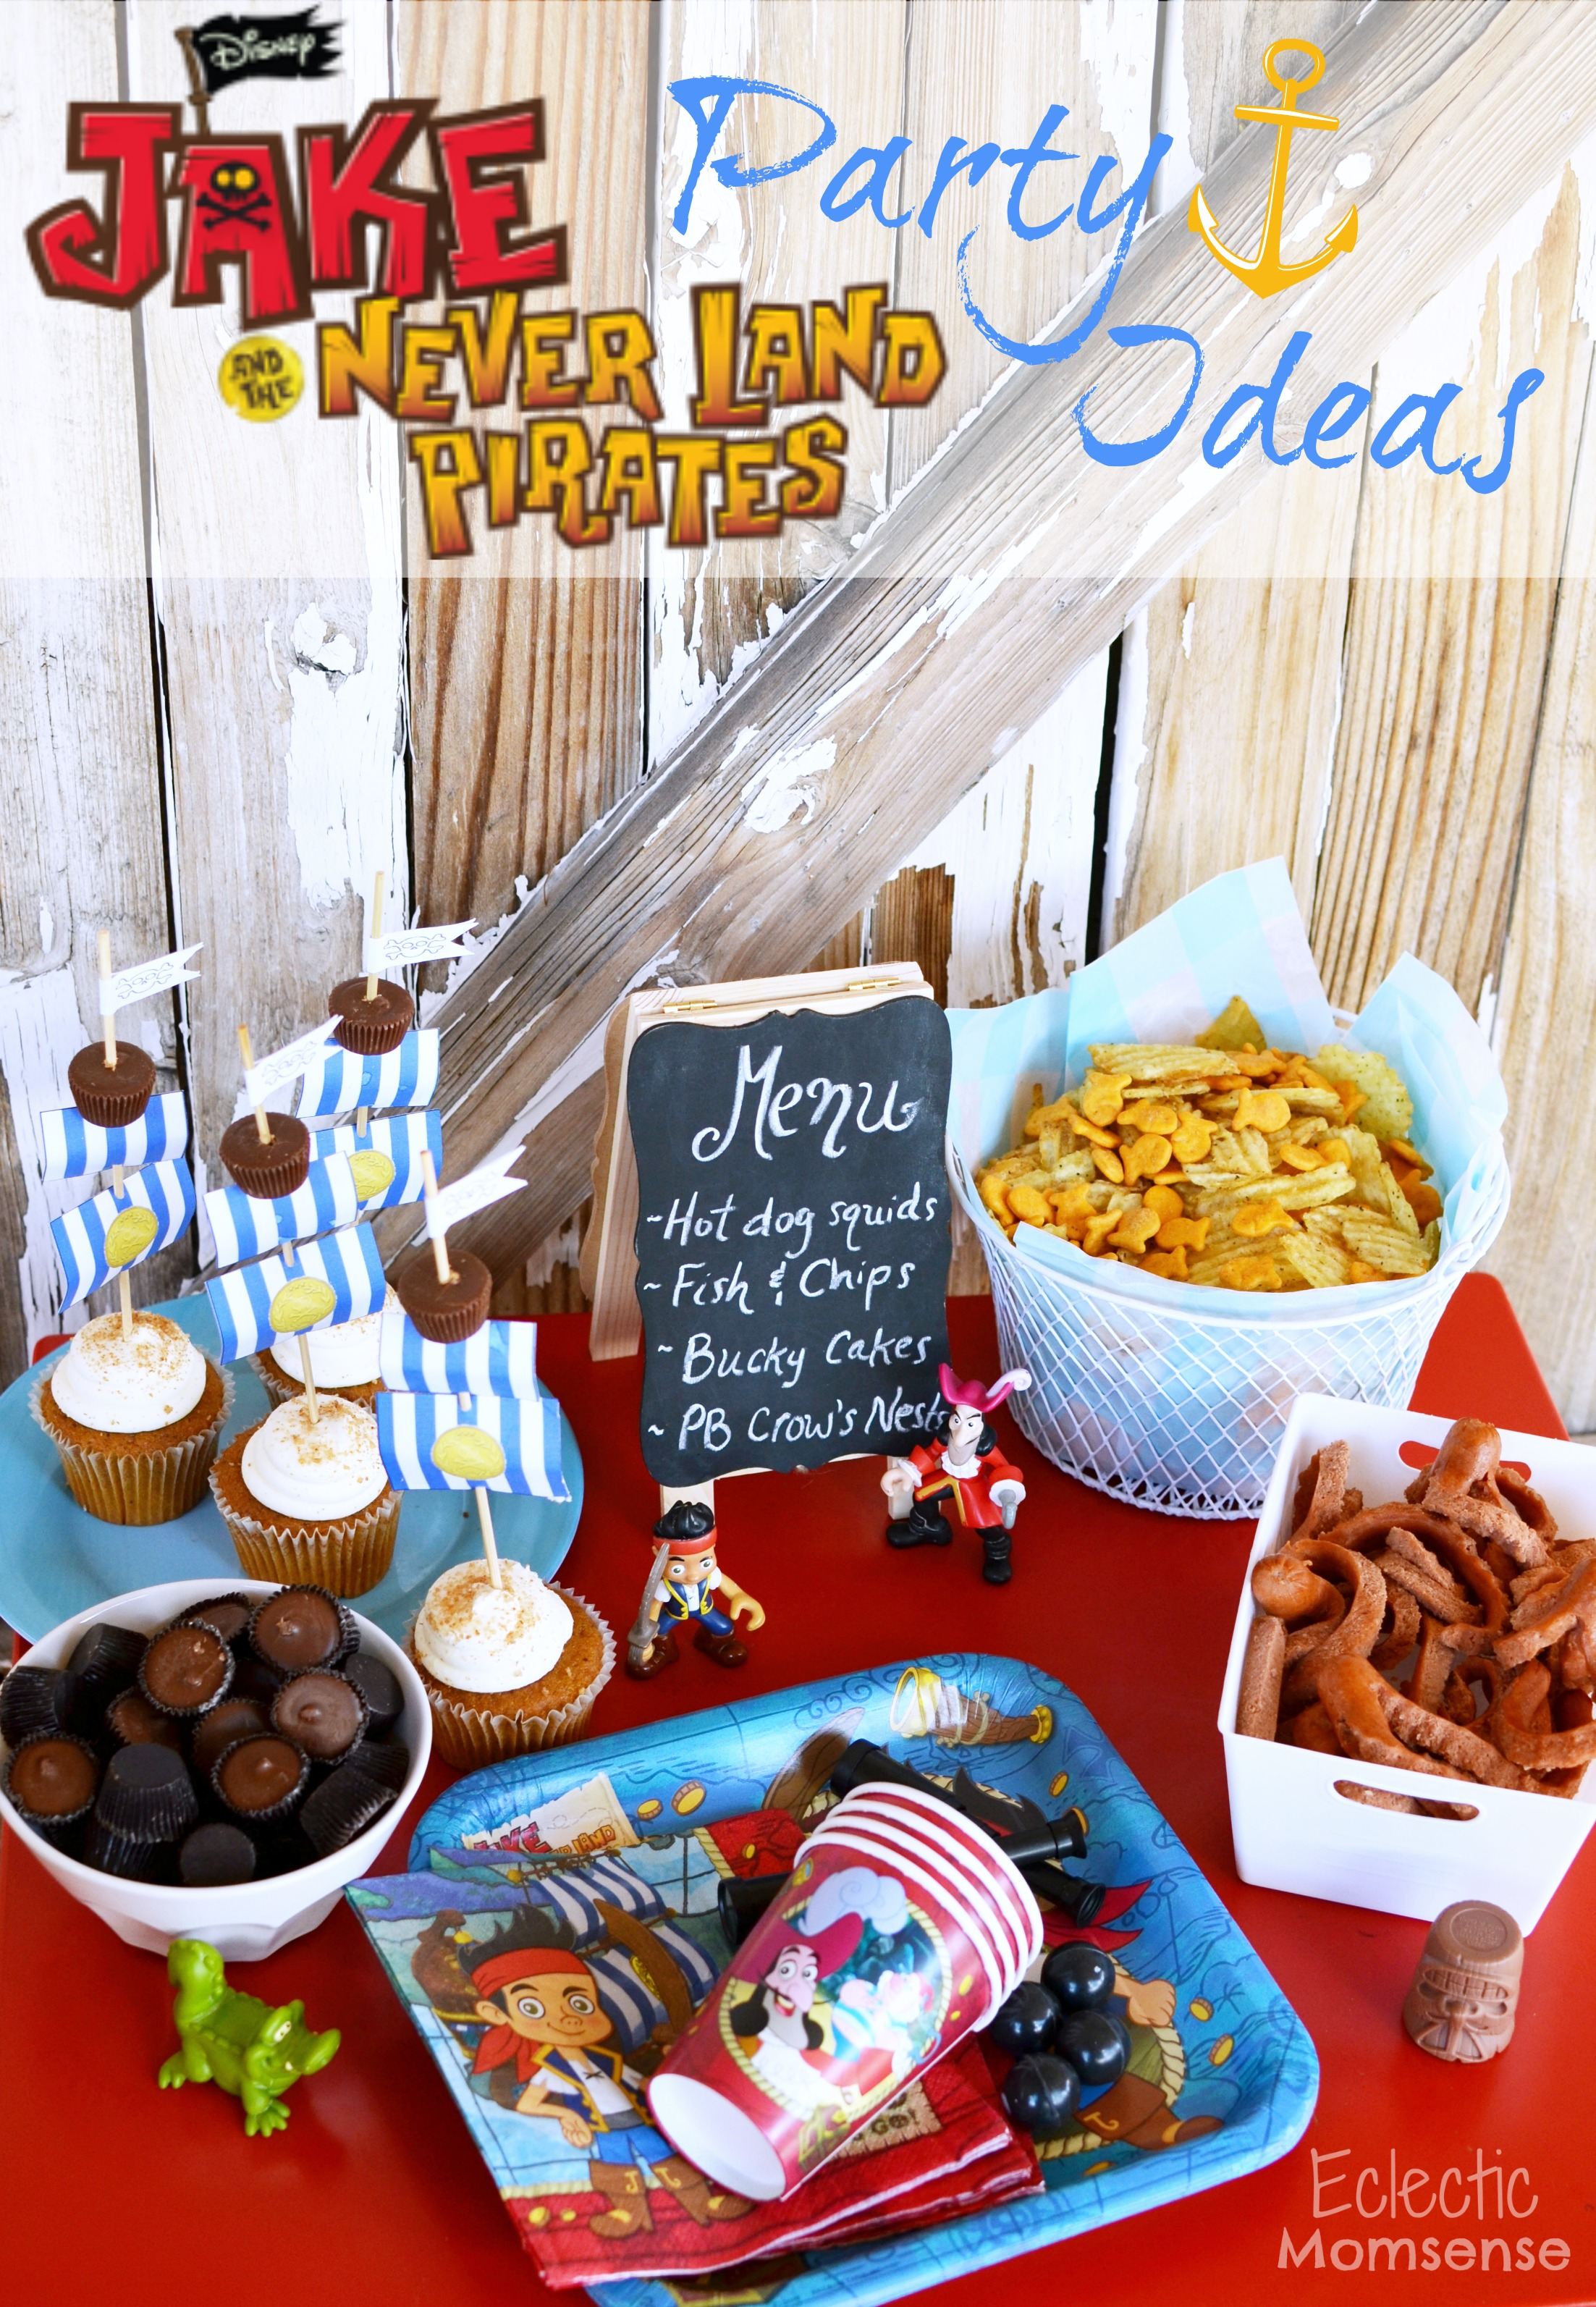 Fine Easy Jake And The Neverland Pirates Party Ideas Eclectic Momsense Funny Birthday Cards Online Inifofree Goldxyz